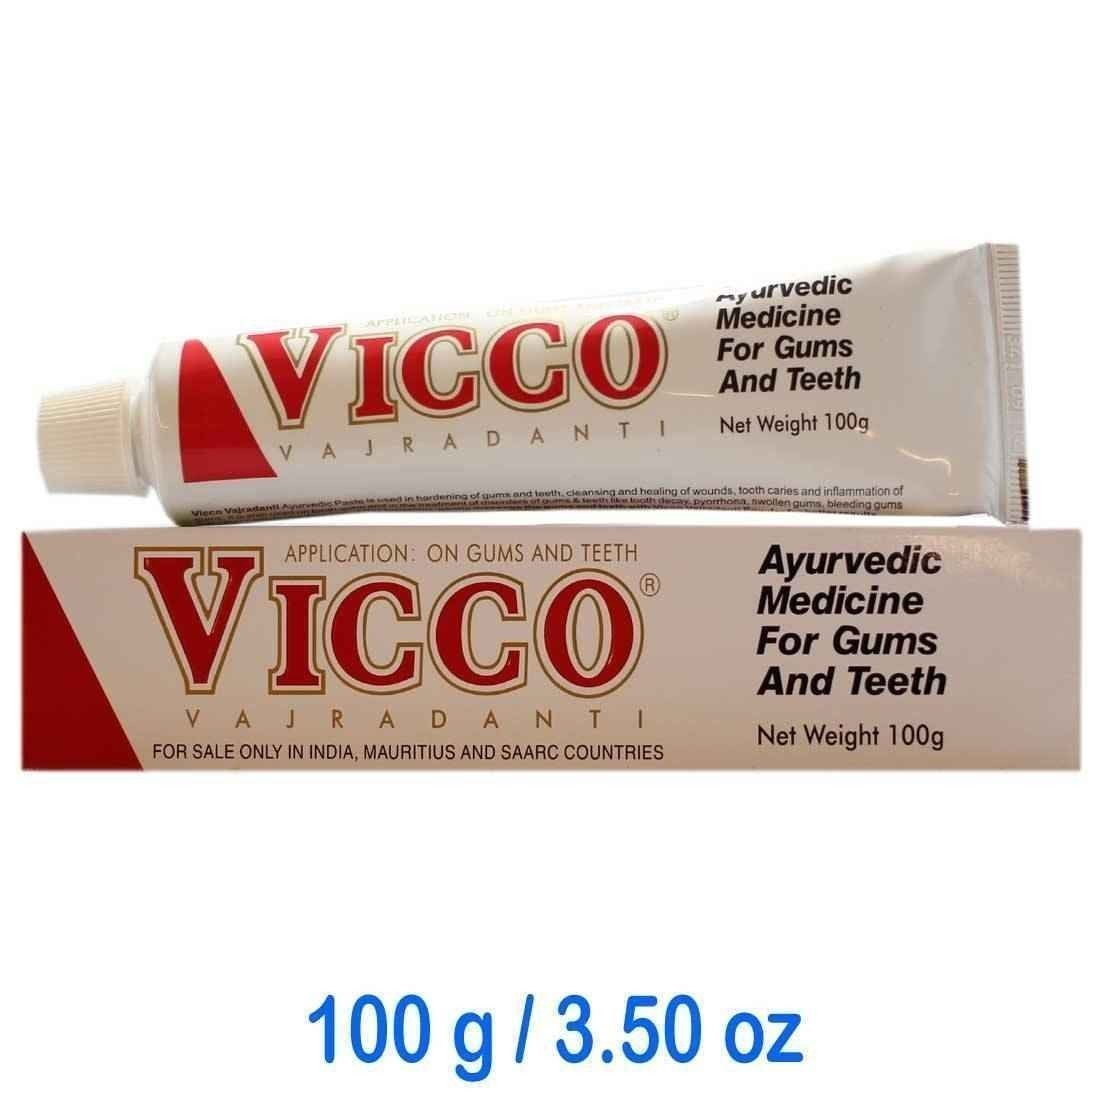 Vicco Vajradanti ToothPaste 100gm Ayurvedic For Gum and Teeth (Pack of 5)